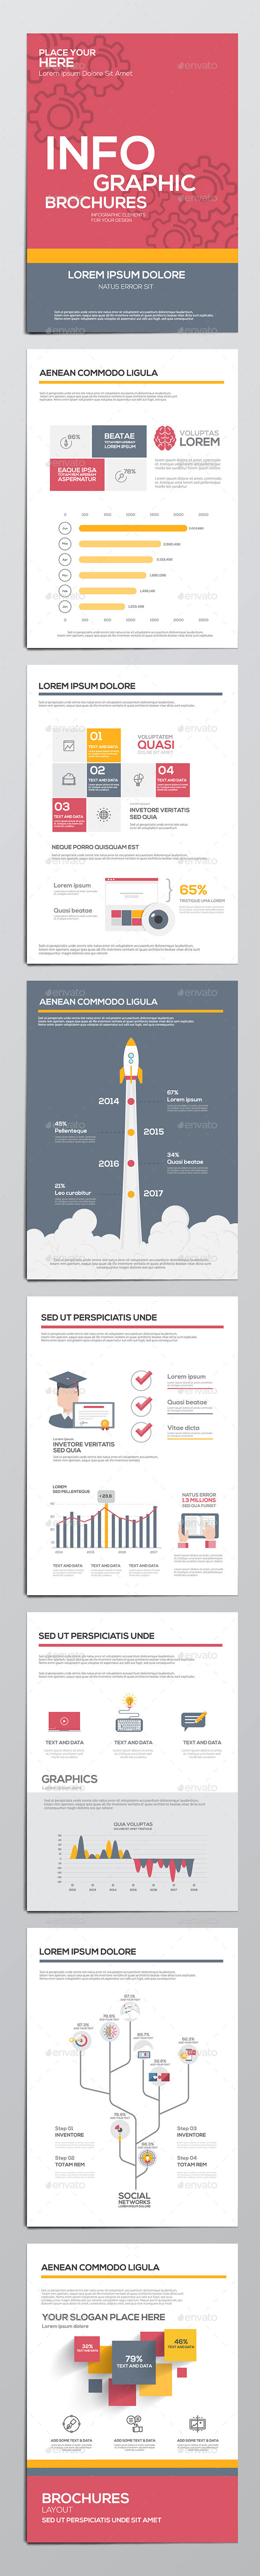 Infographics Elements for Corporate Brochures - Infographics